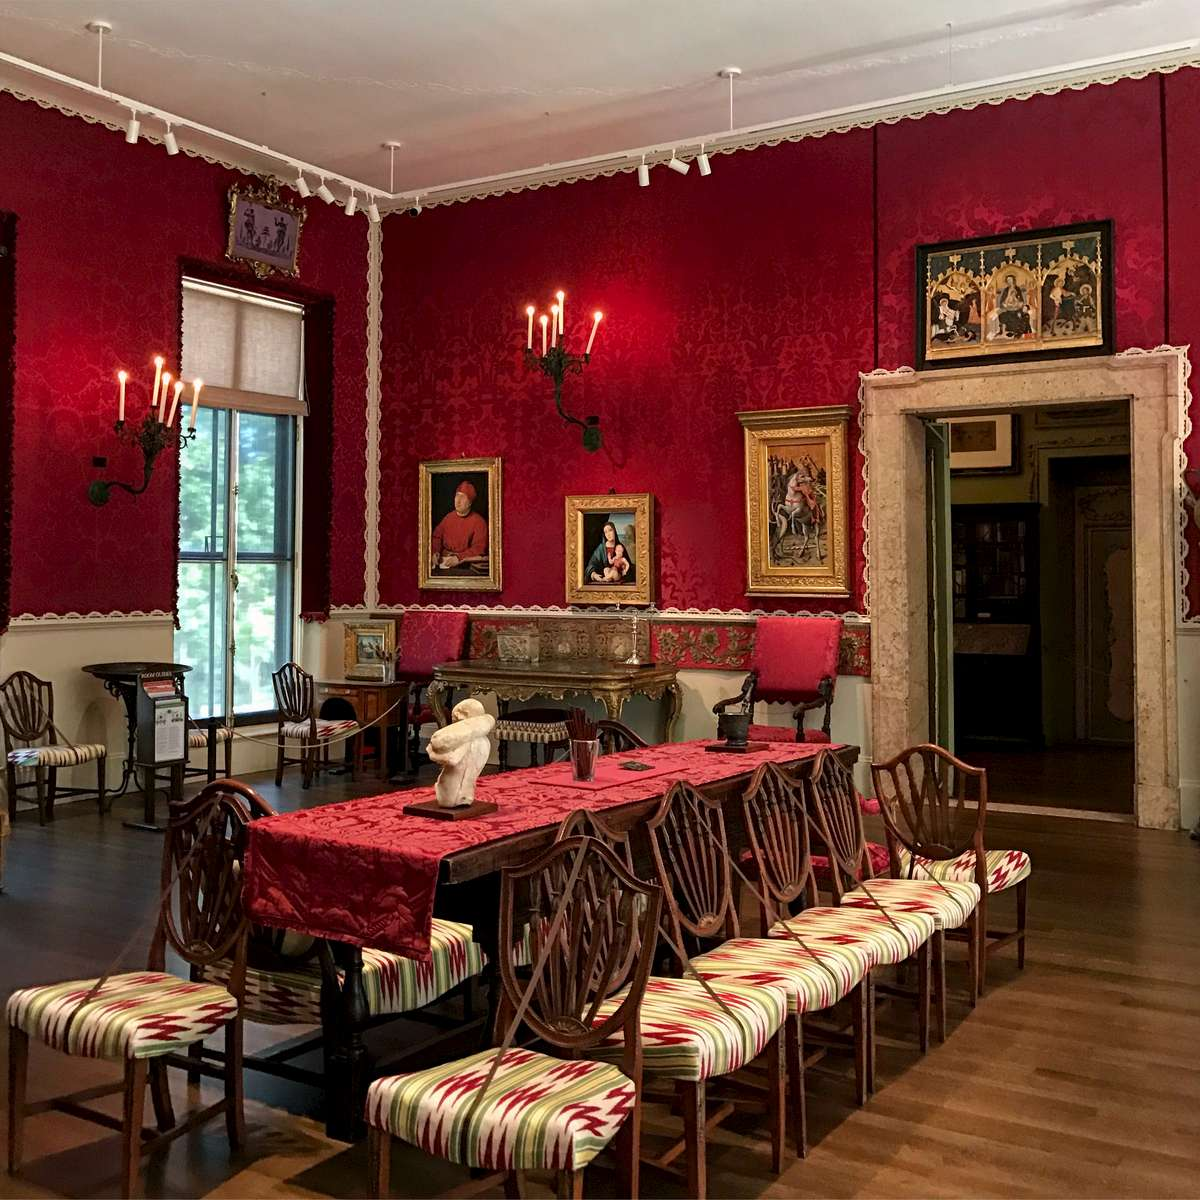 IKD has been retained by the Gardner Museum for the LED lighting upgrade project for the Museum. The Raphael room was the first gallery in a phased plan to upgrade all lighting in the Museum.